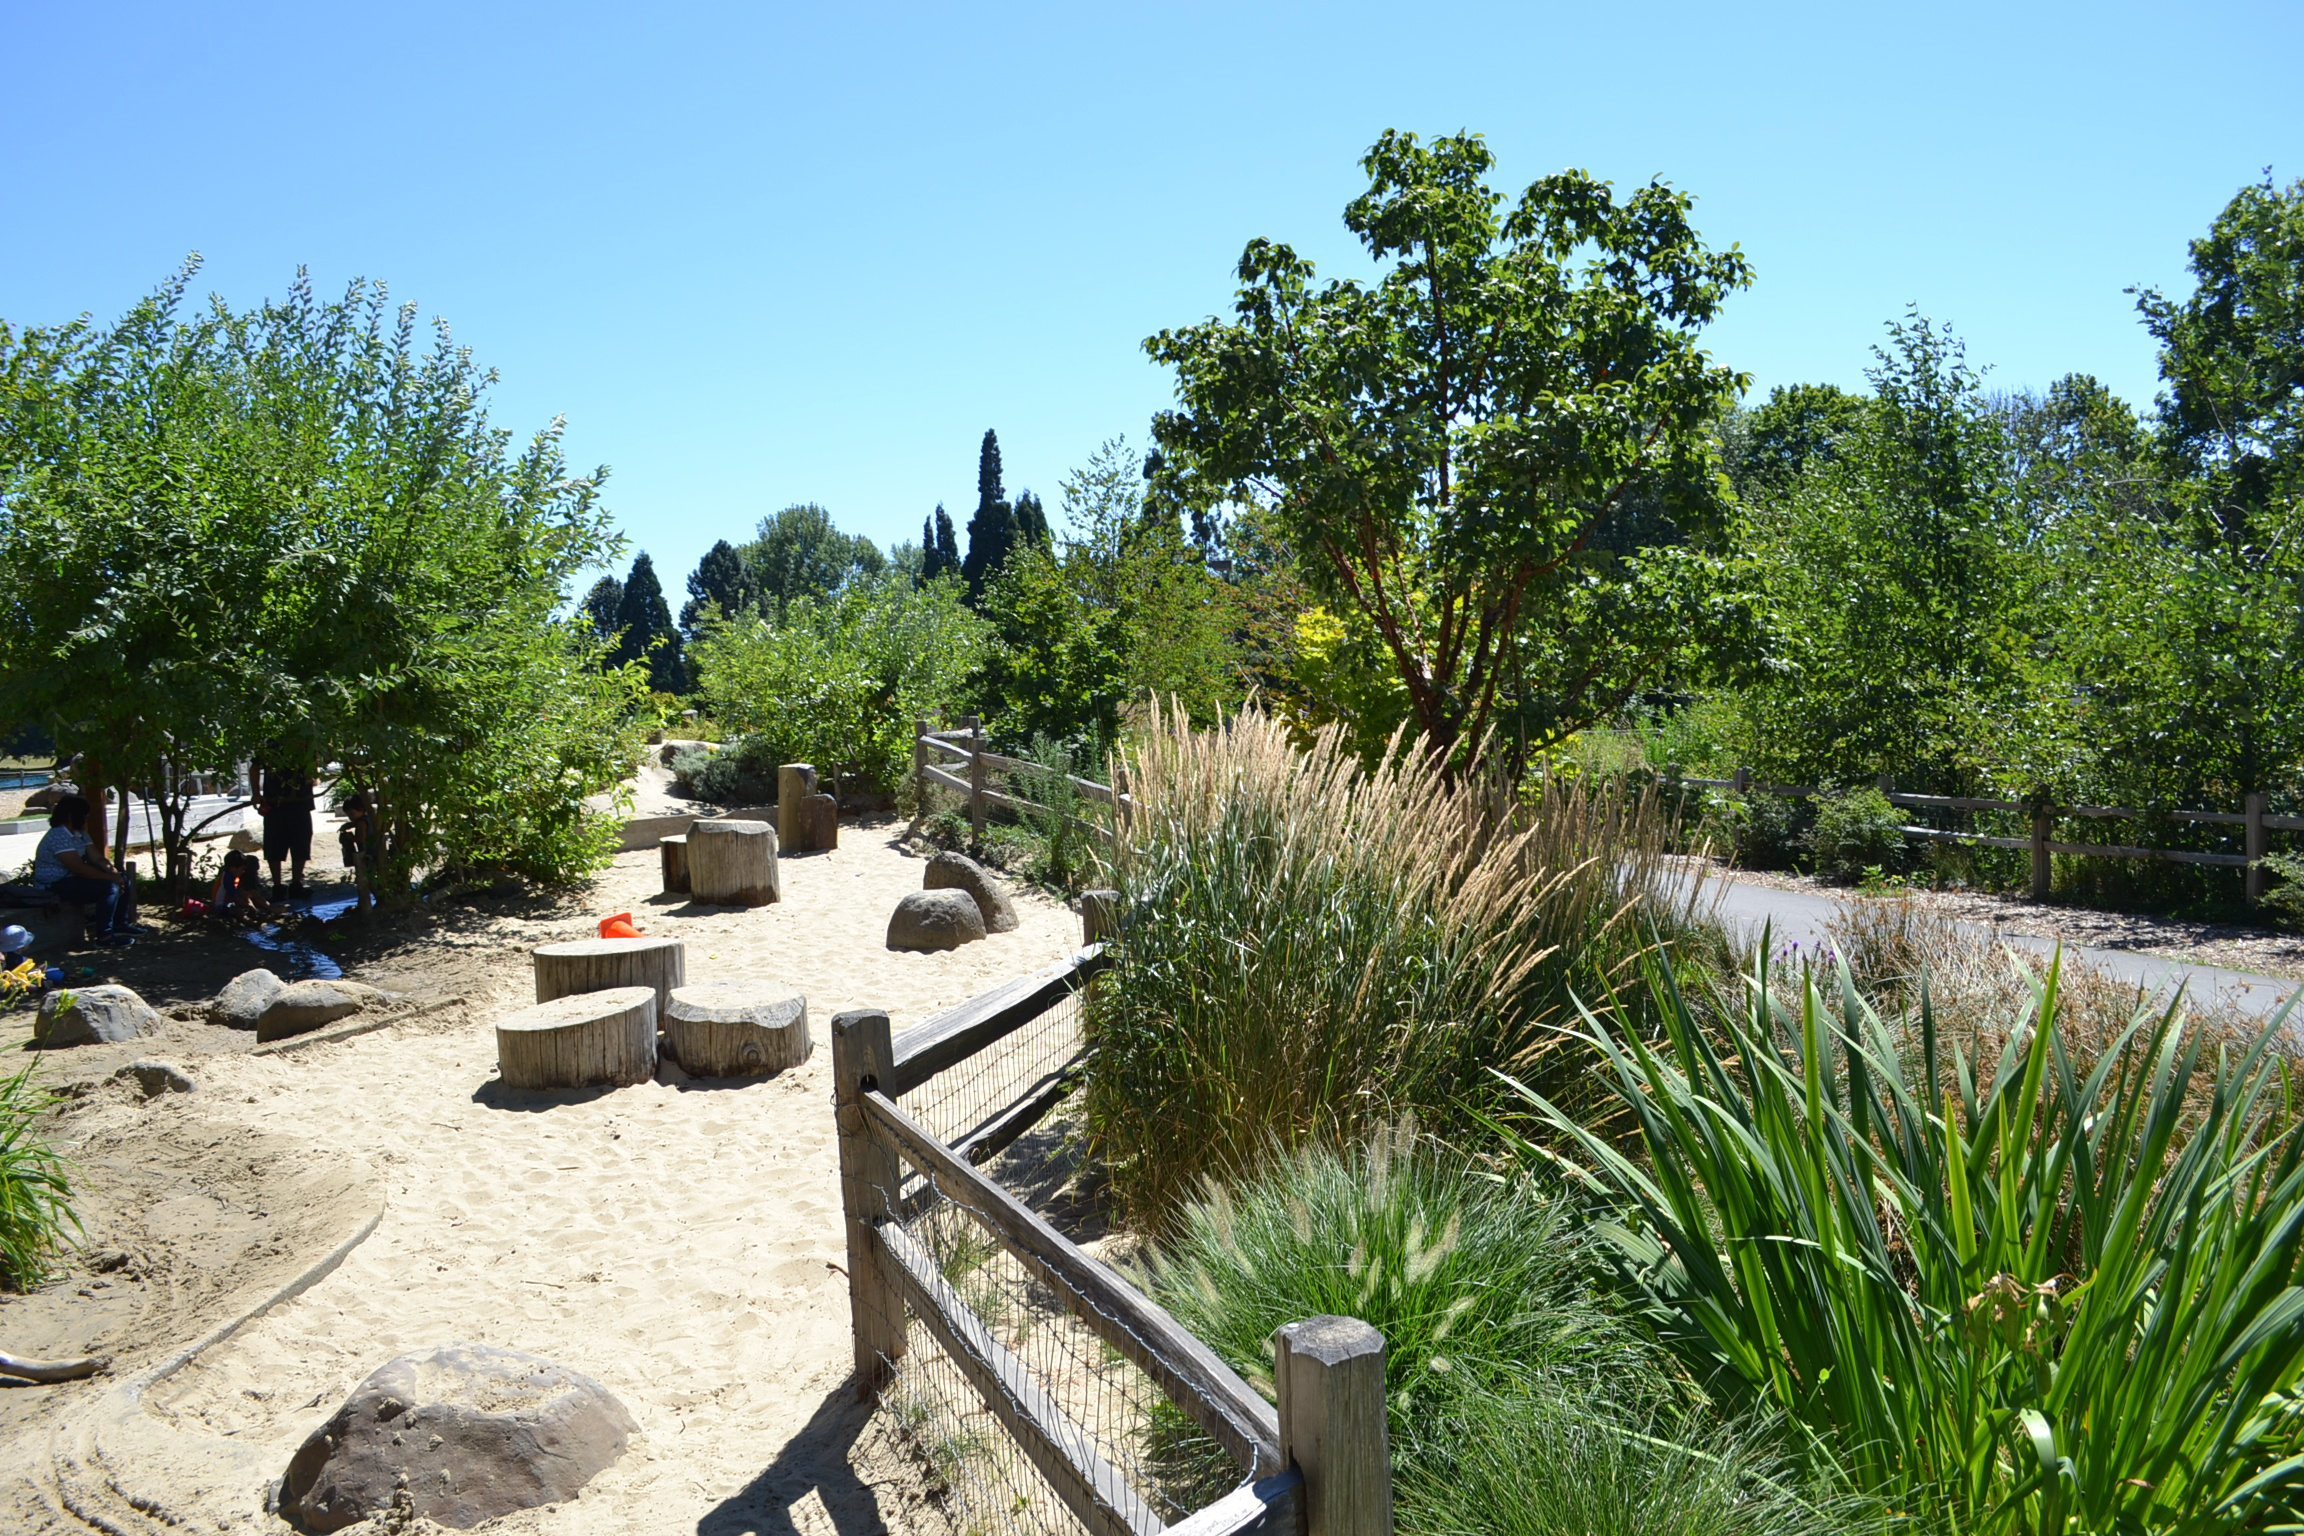 mature plants and a sand play area separated by a wood fence on a sunny day